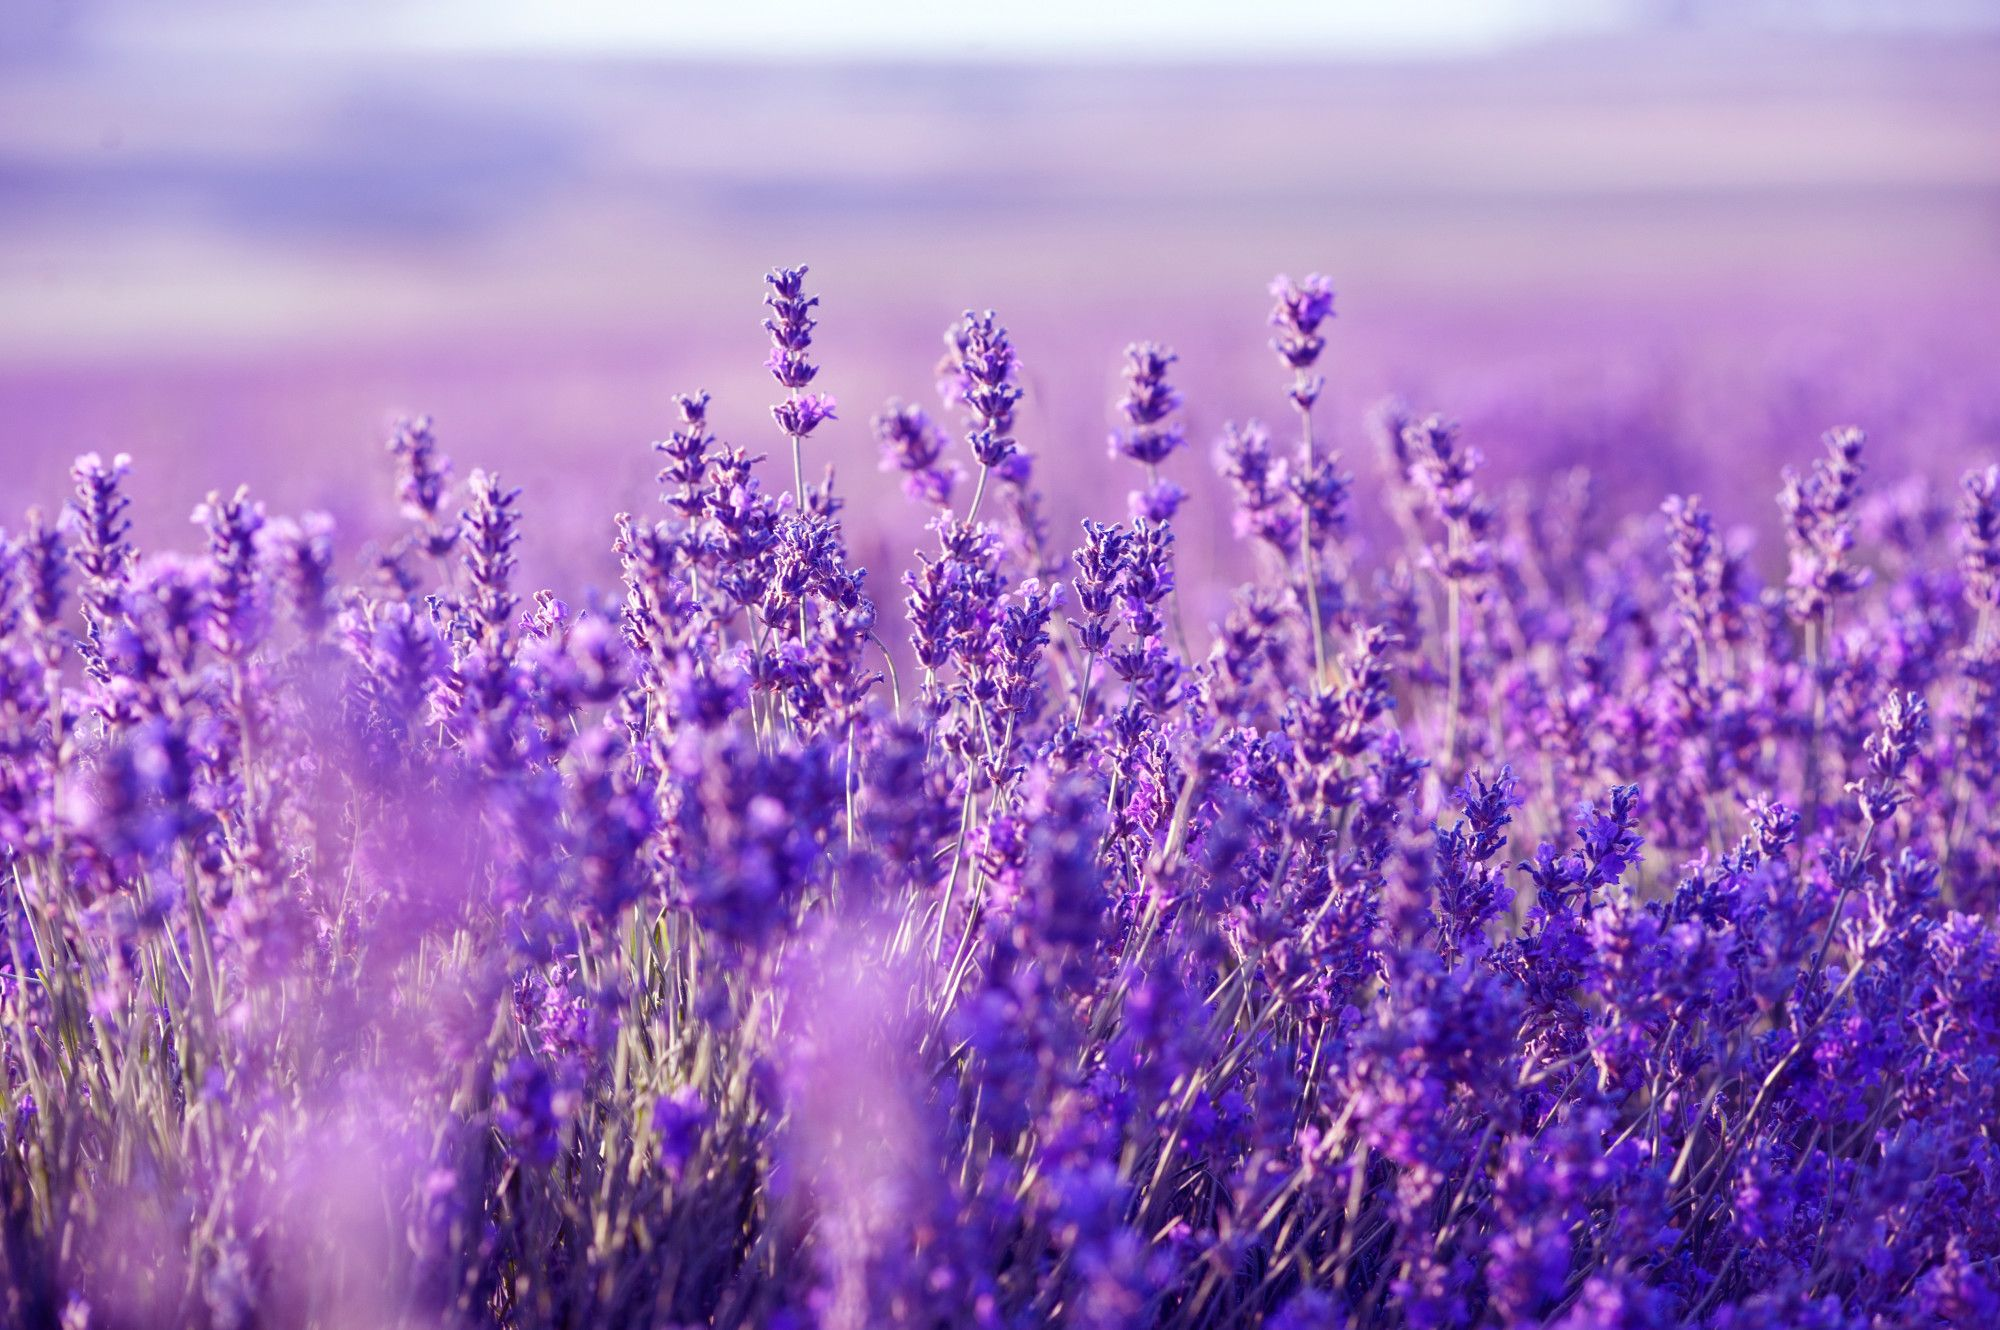 Lavender Desktop Wallpapers Top Free Lavender Desktop Backgrounds Wallpaperaccess New users enjoy 60% off. lavender desktop wallpapers top free